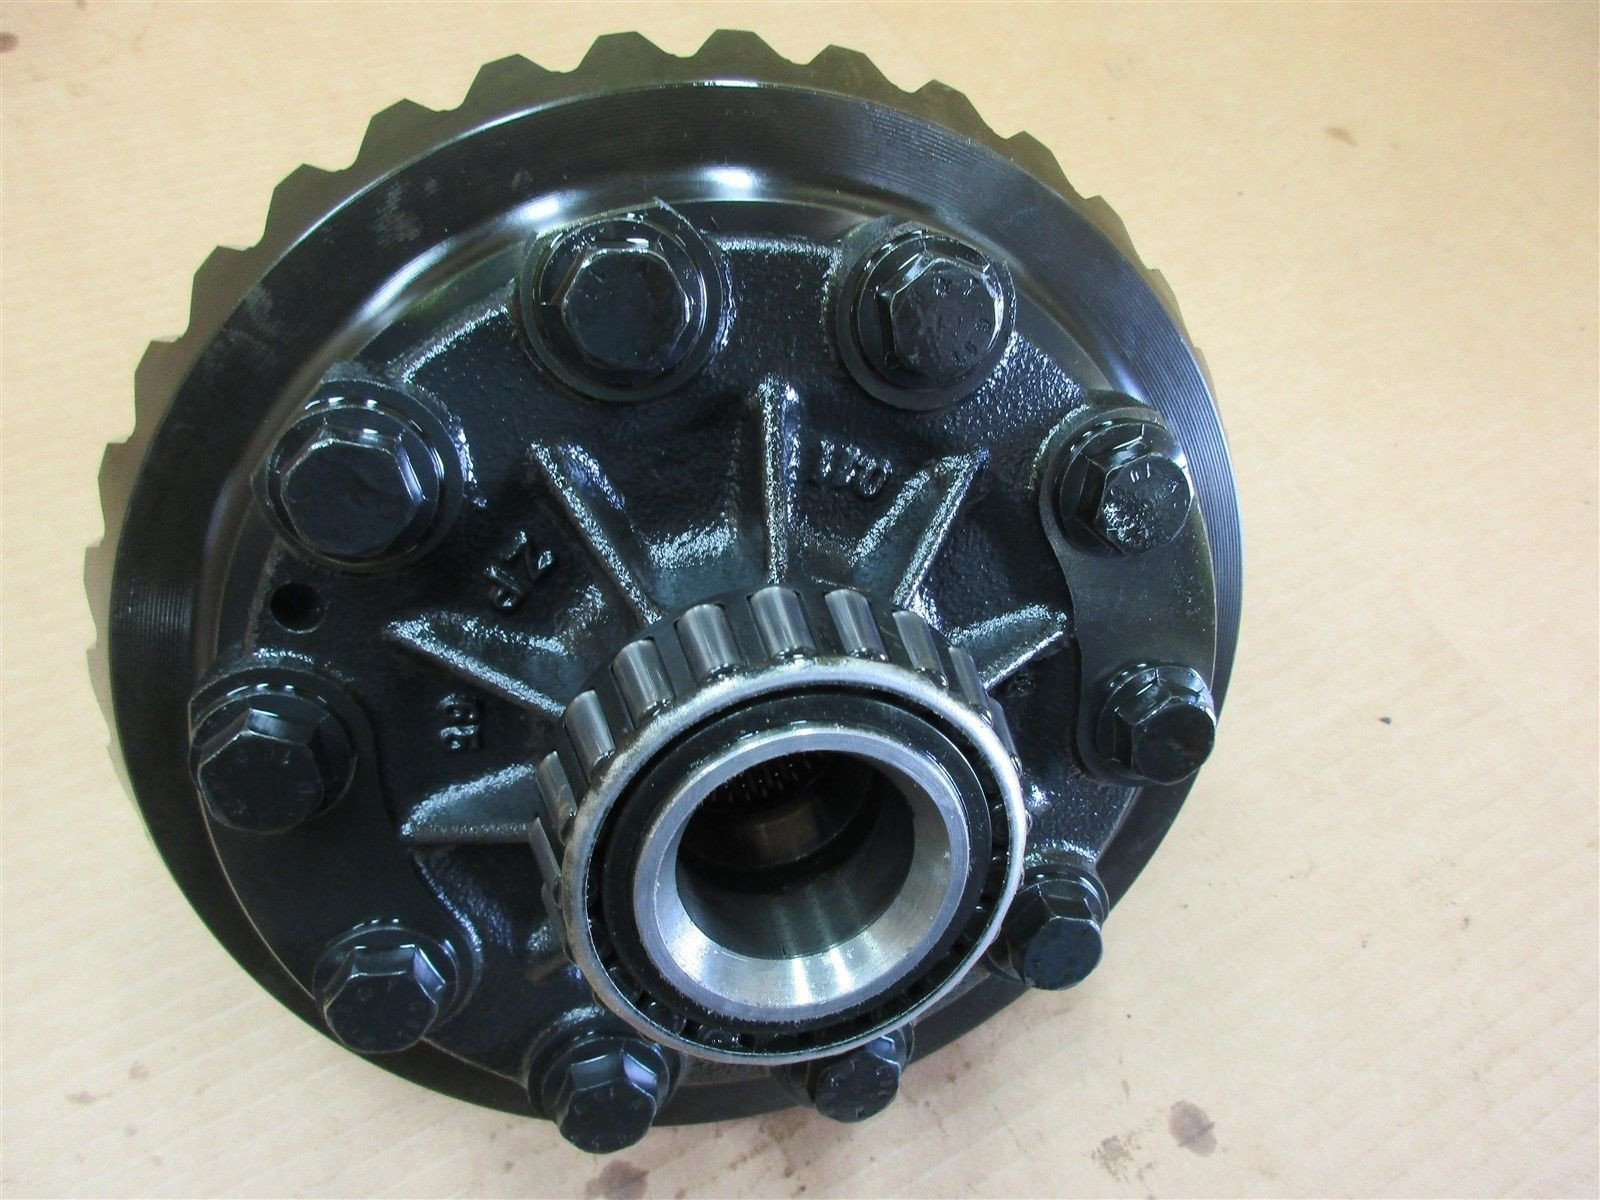 04 Cayenne Turbo AWD Porsche 955 REAR INTERNAL DIFFERENTIAL GEAR 161,716